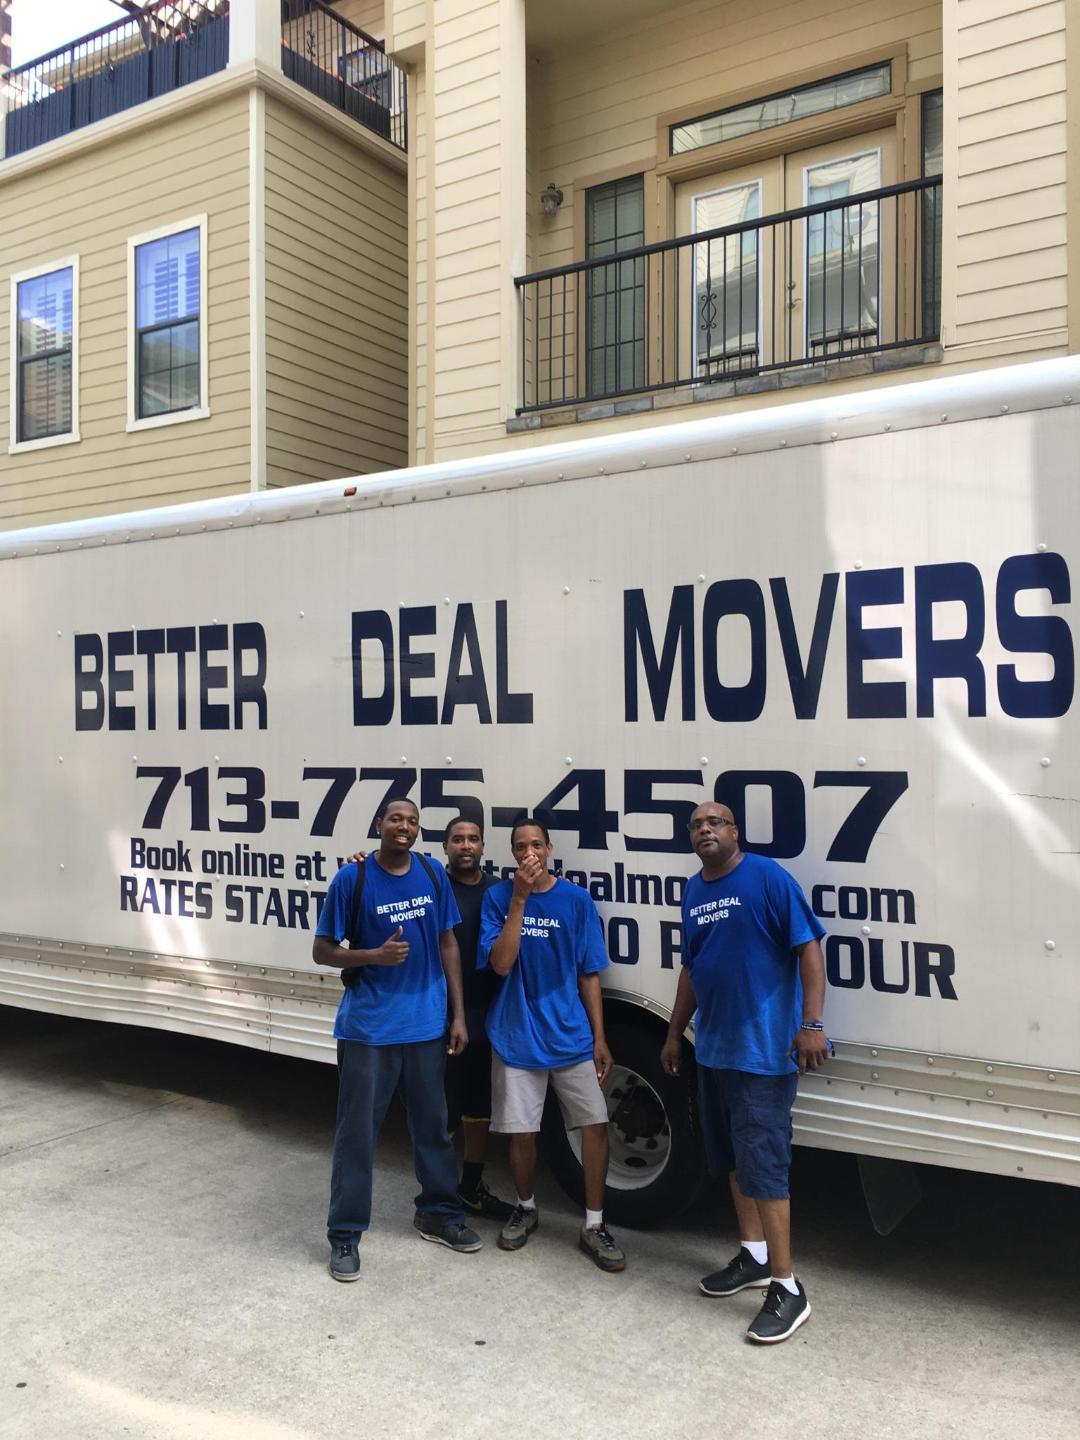 Better Deal Movers - Katy, TX